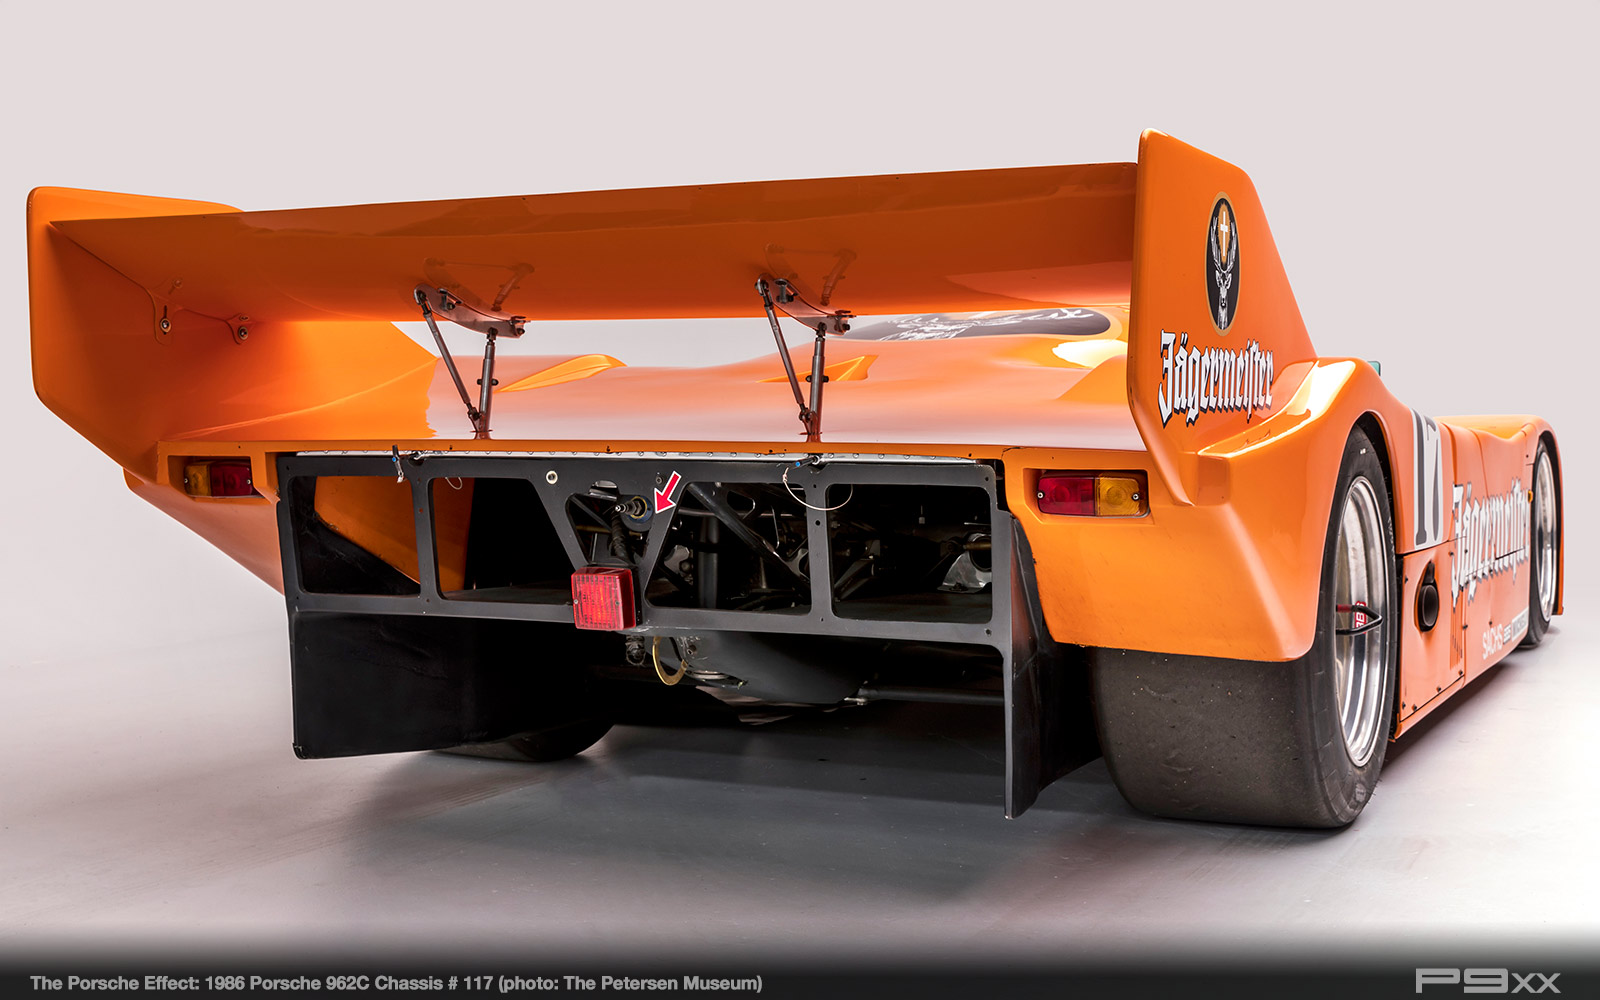 1986-Jagermeister-962C-Chassis-117-Petersen-Automotive-Museum-The-Porsche-Effect-435